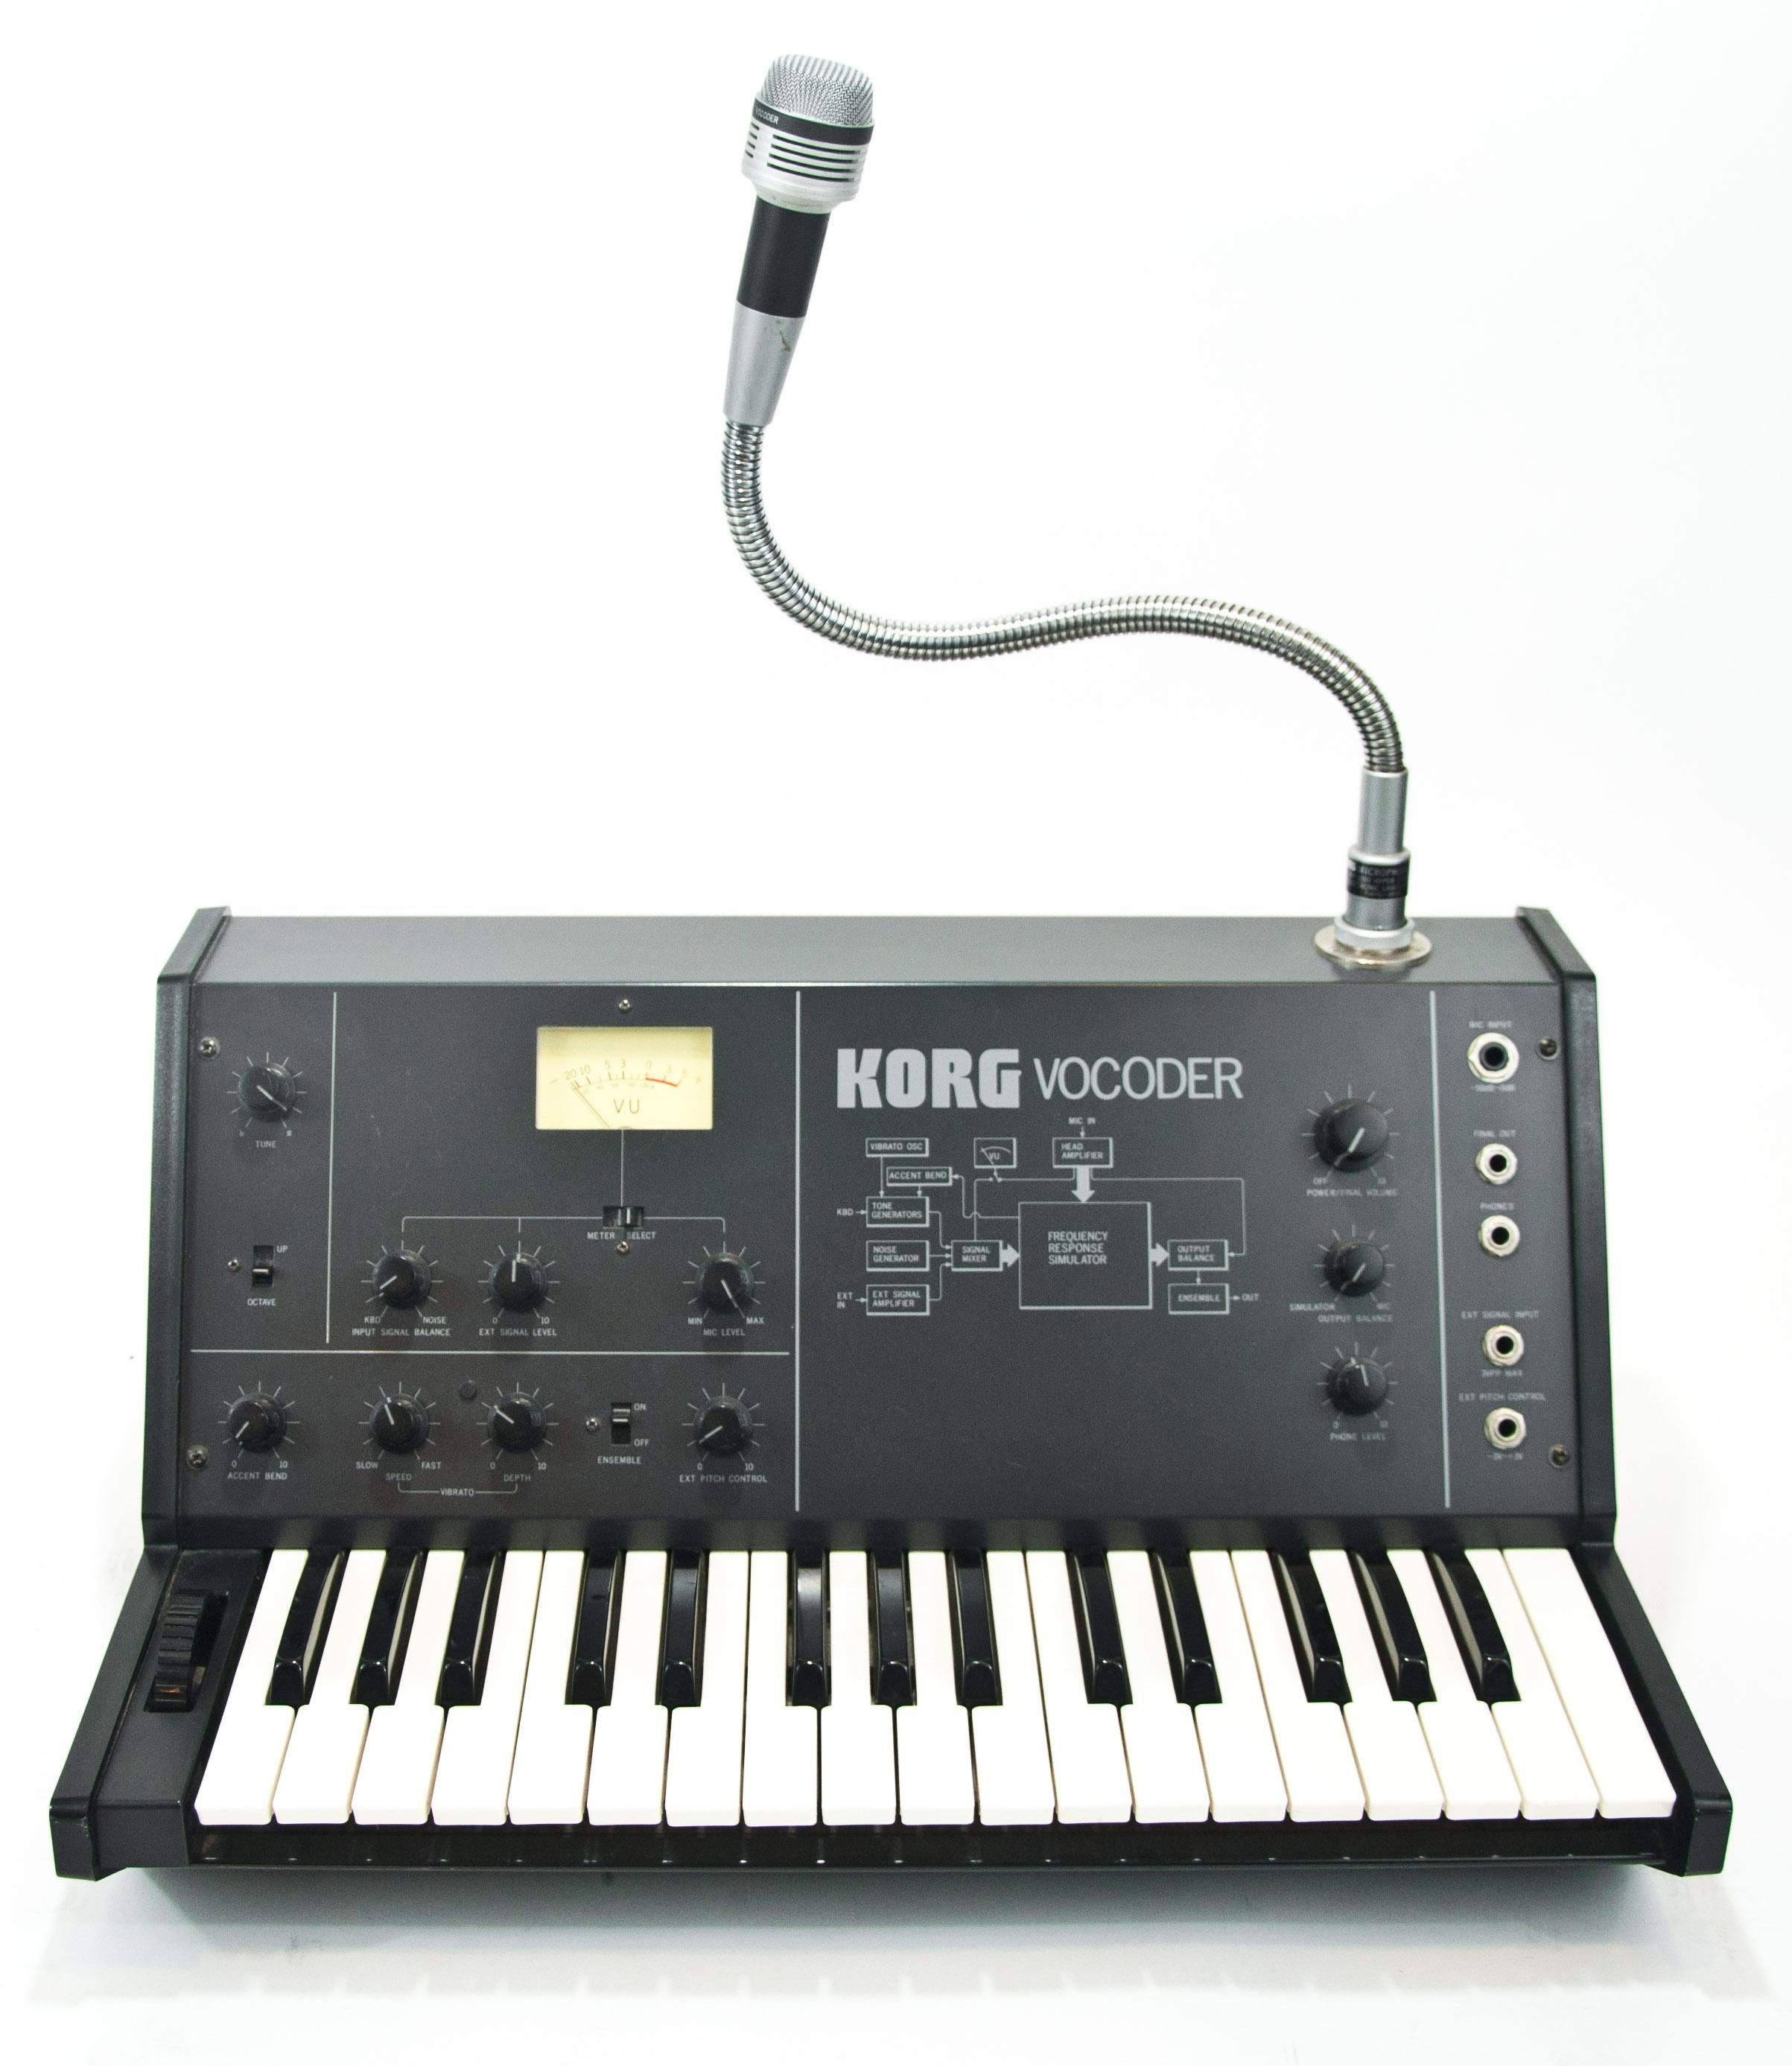 korg vc 10 vocoder synthesizers electronic music instruments music easy guitar. Black Bedroom Furniture Sets. Home Design Ideas